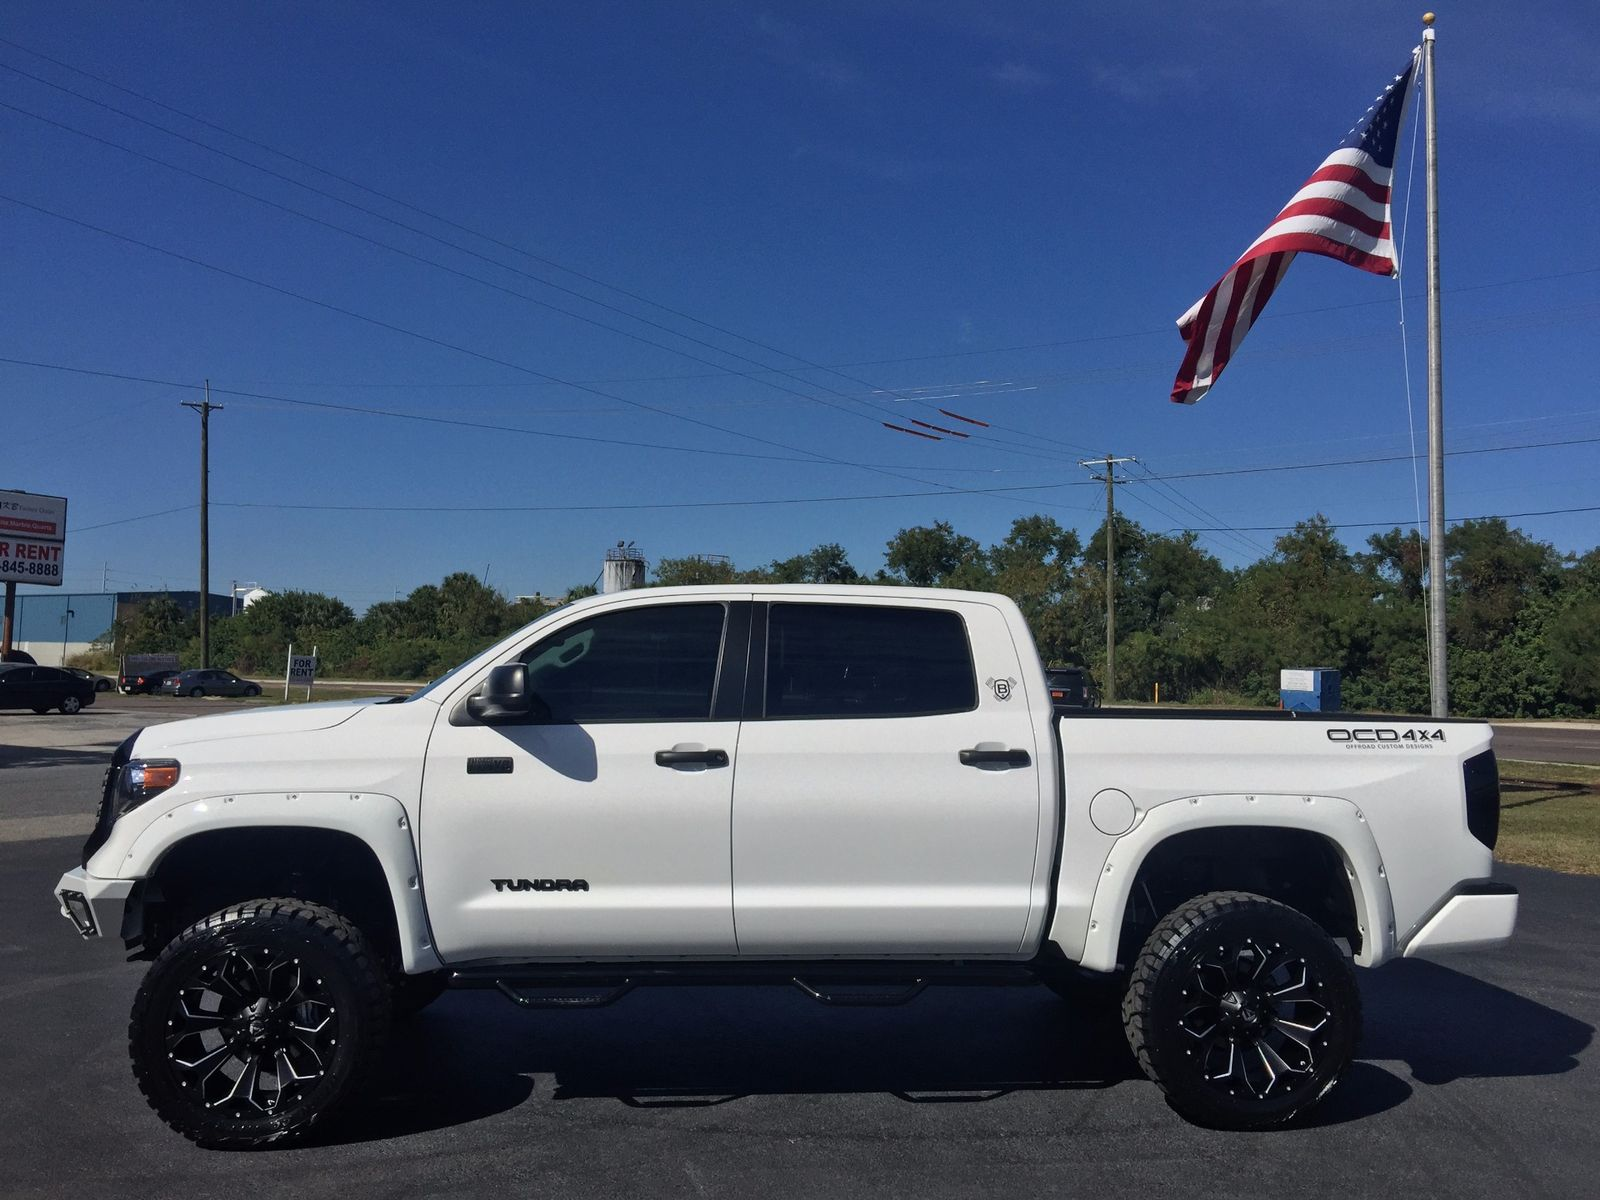 Toyota Of Tampa Bay >> 2018 Toyota Tundra USTOM LIFTED CREWMAX LEATHER 4X4 V8 Florida Bayshore Automotive